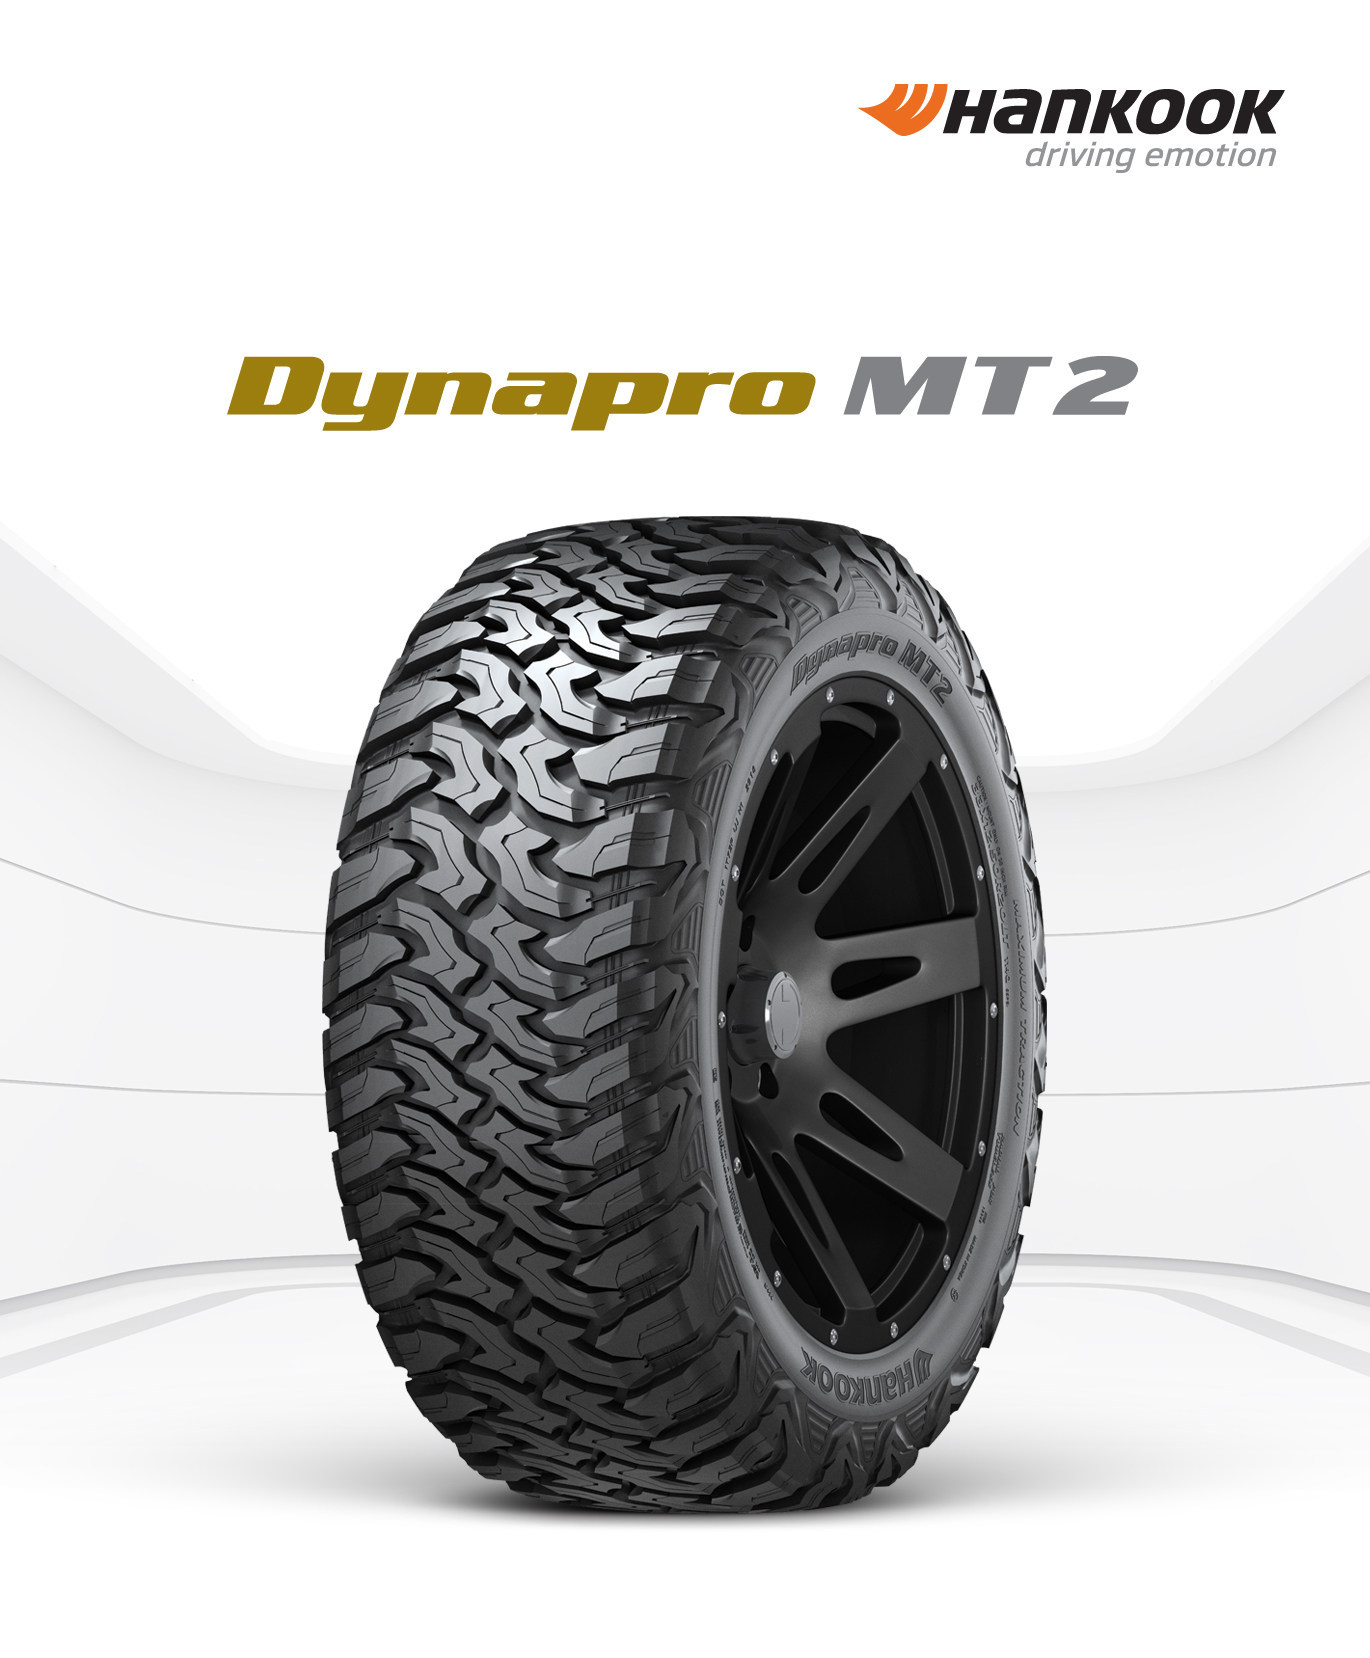 Hankook Tire offers outdoor enthusiasts an all-access pass to adventure with the all-new Dynapro MT2 (RT05).